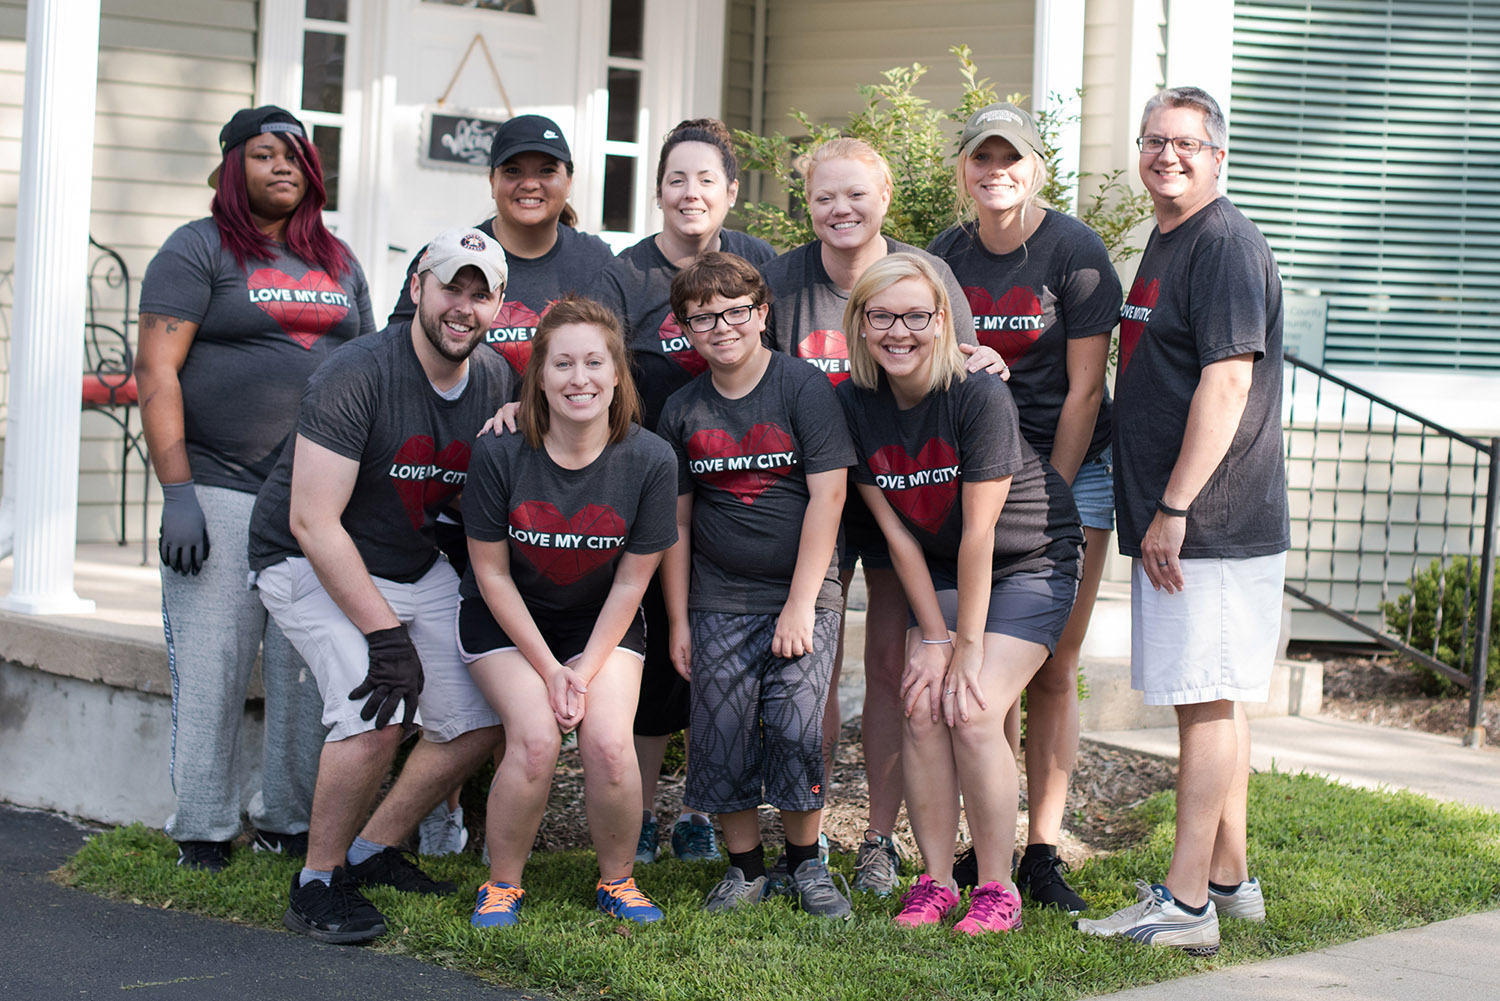 """Love My City - Church isn't church unless our compassion spills beyond the four walls of our weekend services. And that happens through something called, """"I Love My City."""" This ongoing initiative is designed for community outreach and positively impacting neighborhoods."""